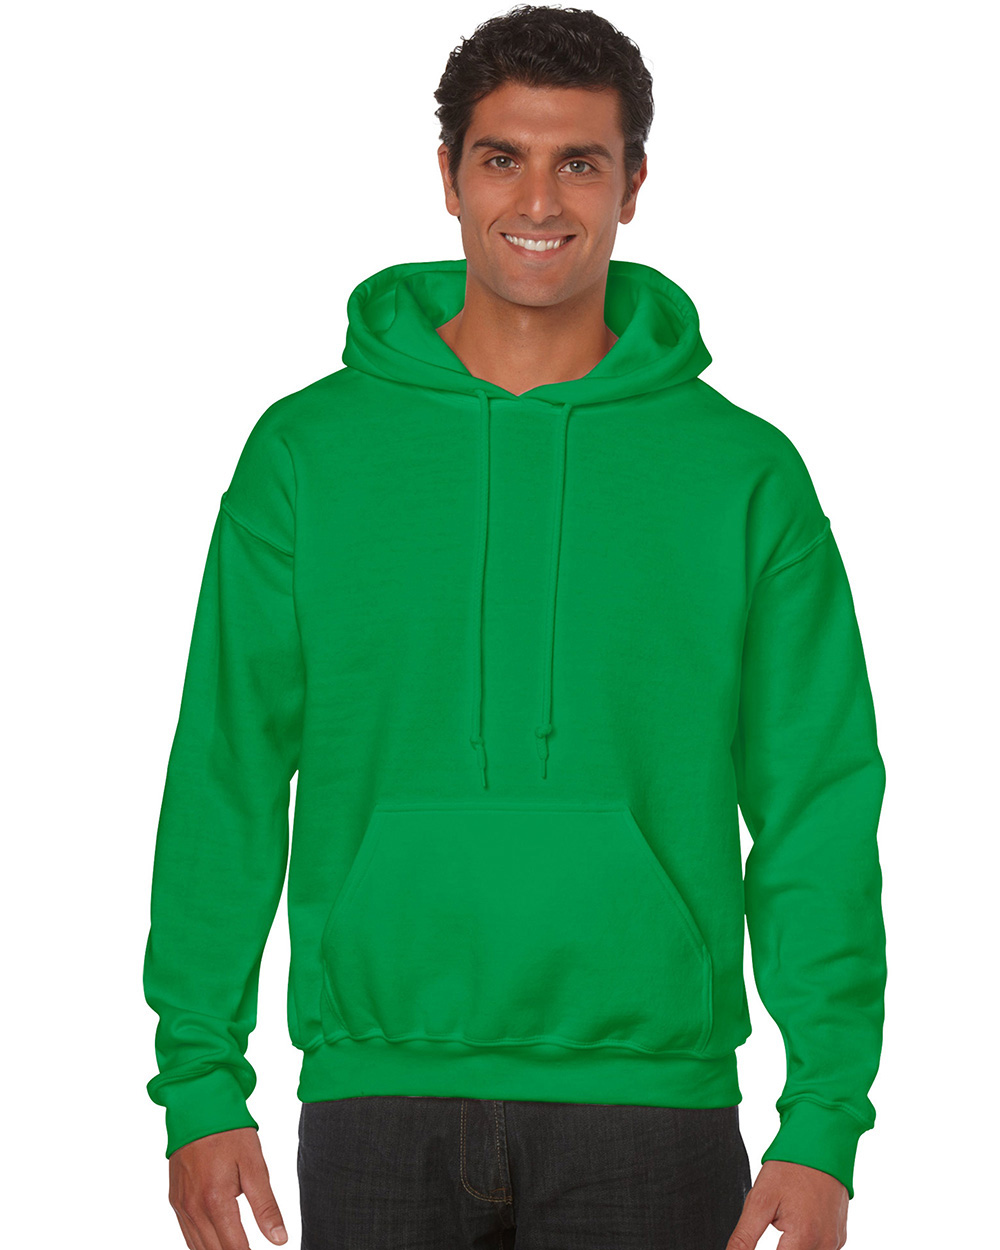 Gildan 18500     Classic Fit Adult Hooded Sweatshirt    50% Cotton / 50% Polyester Fleece